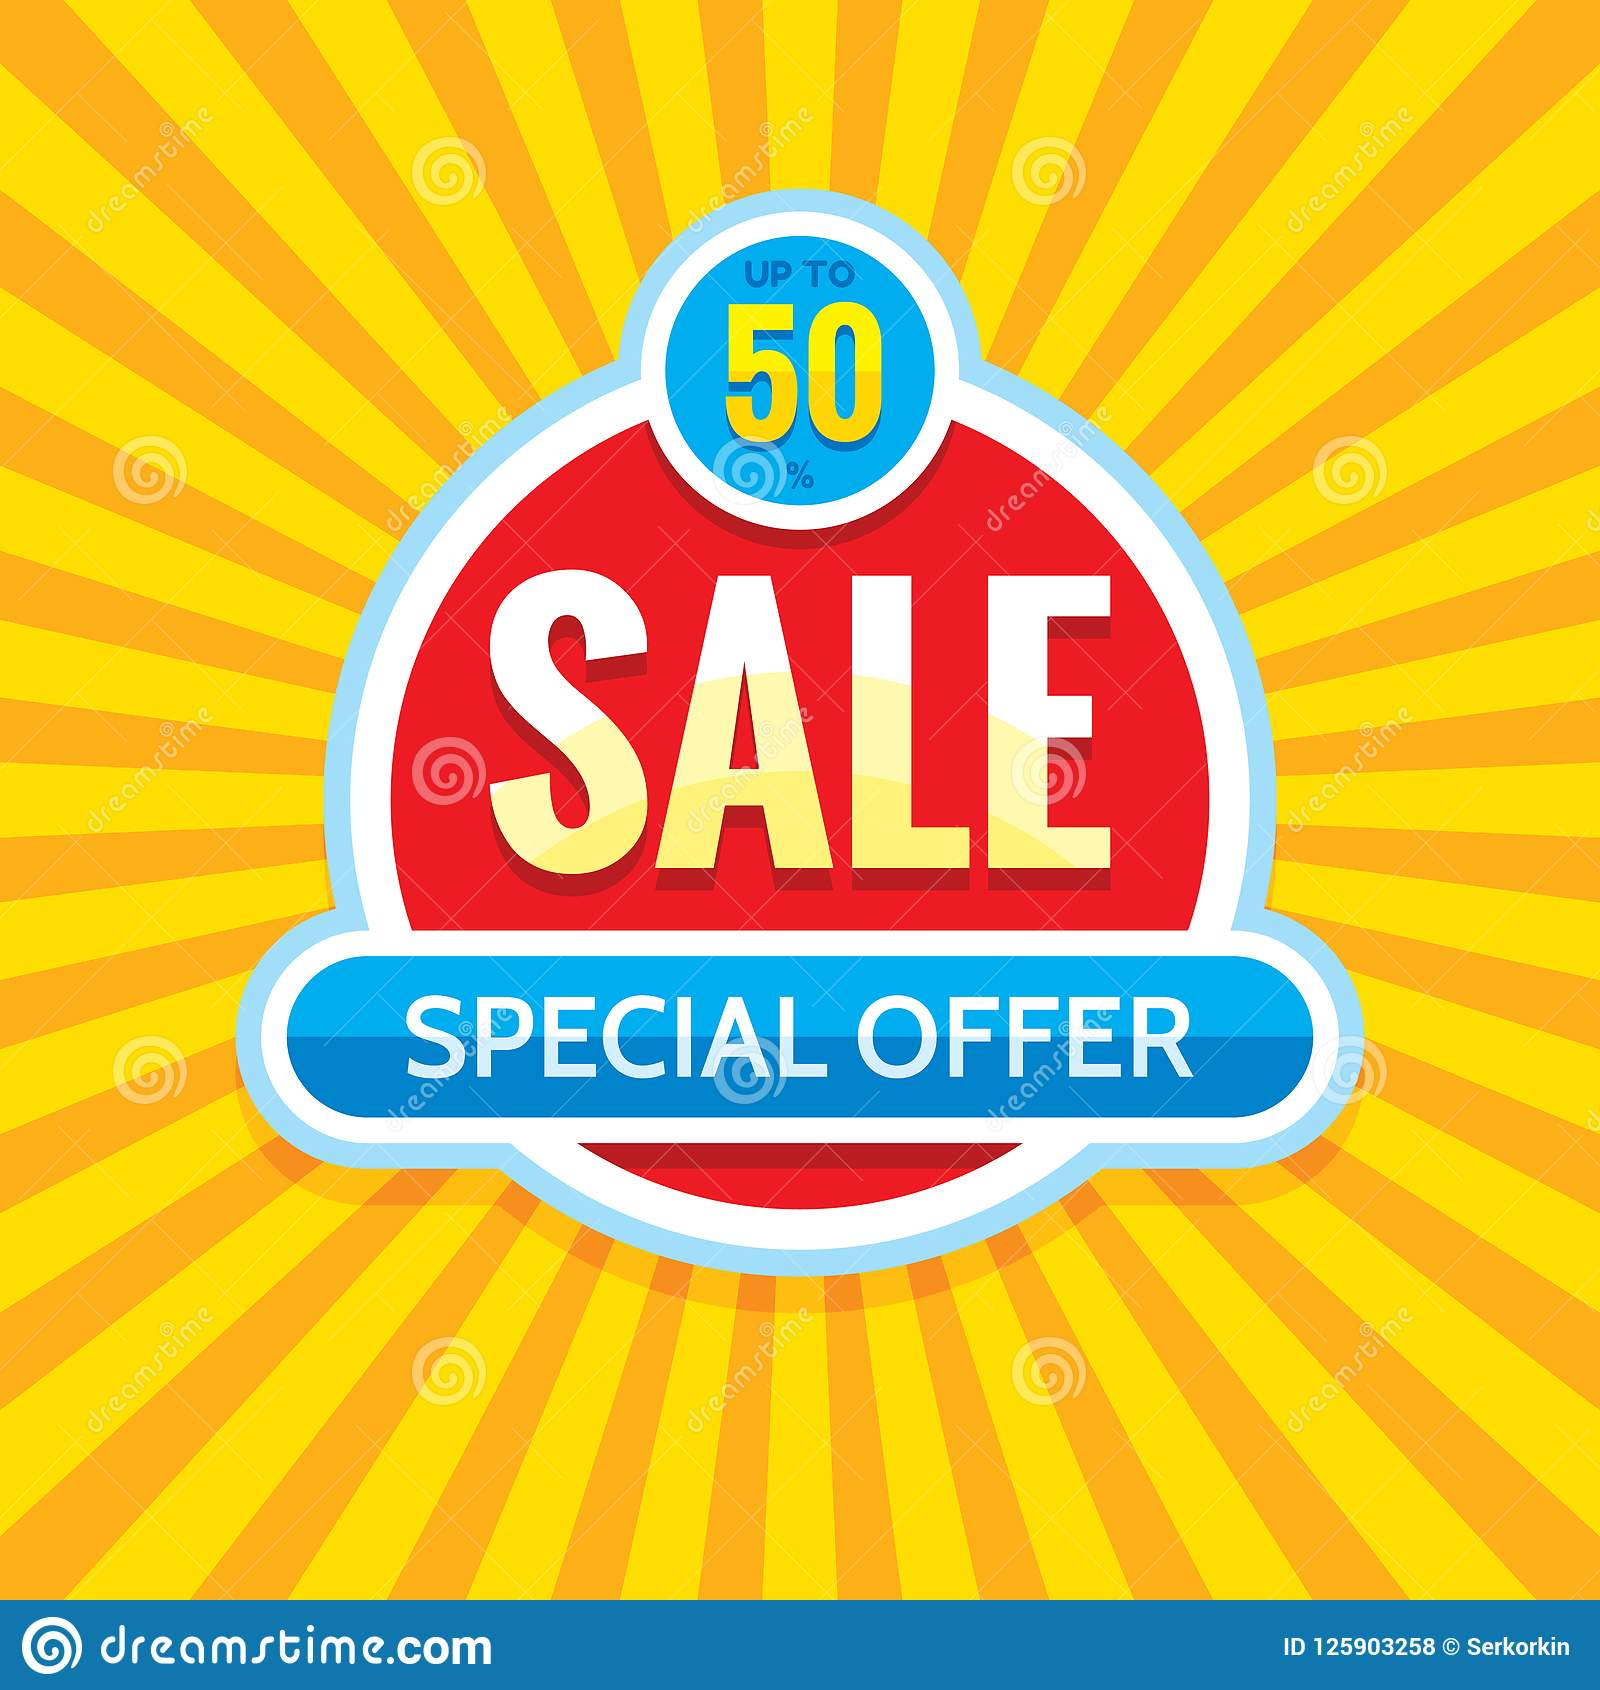 Sale - creative banner vector illustration. Abstract concept discount 50  promotion layout. Special offer sticker. Graphic design.